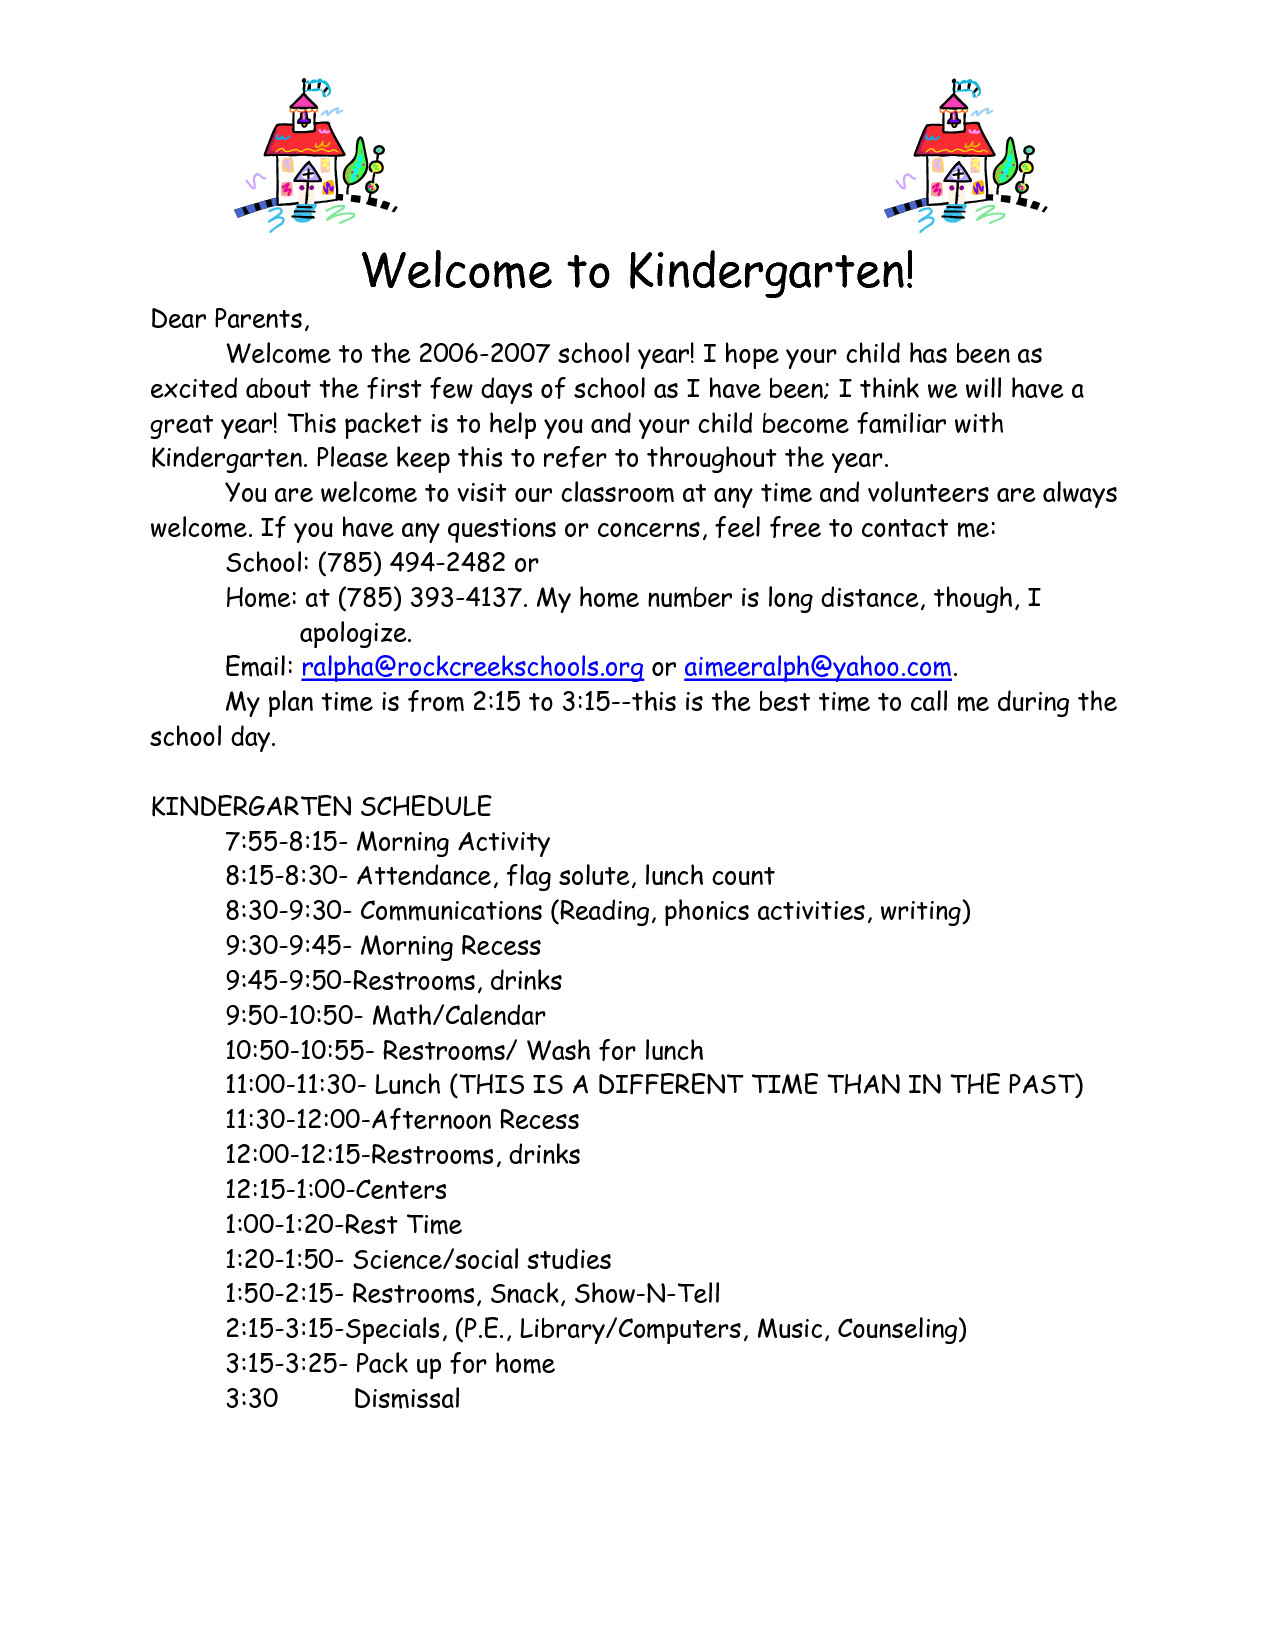 Preschool Welcome Letter Template Sample Preschool Wel E Letter to Parents